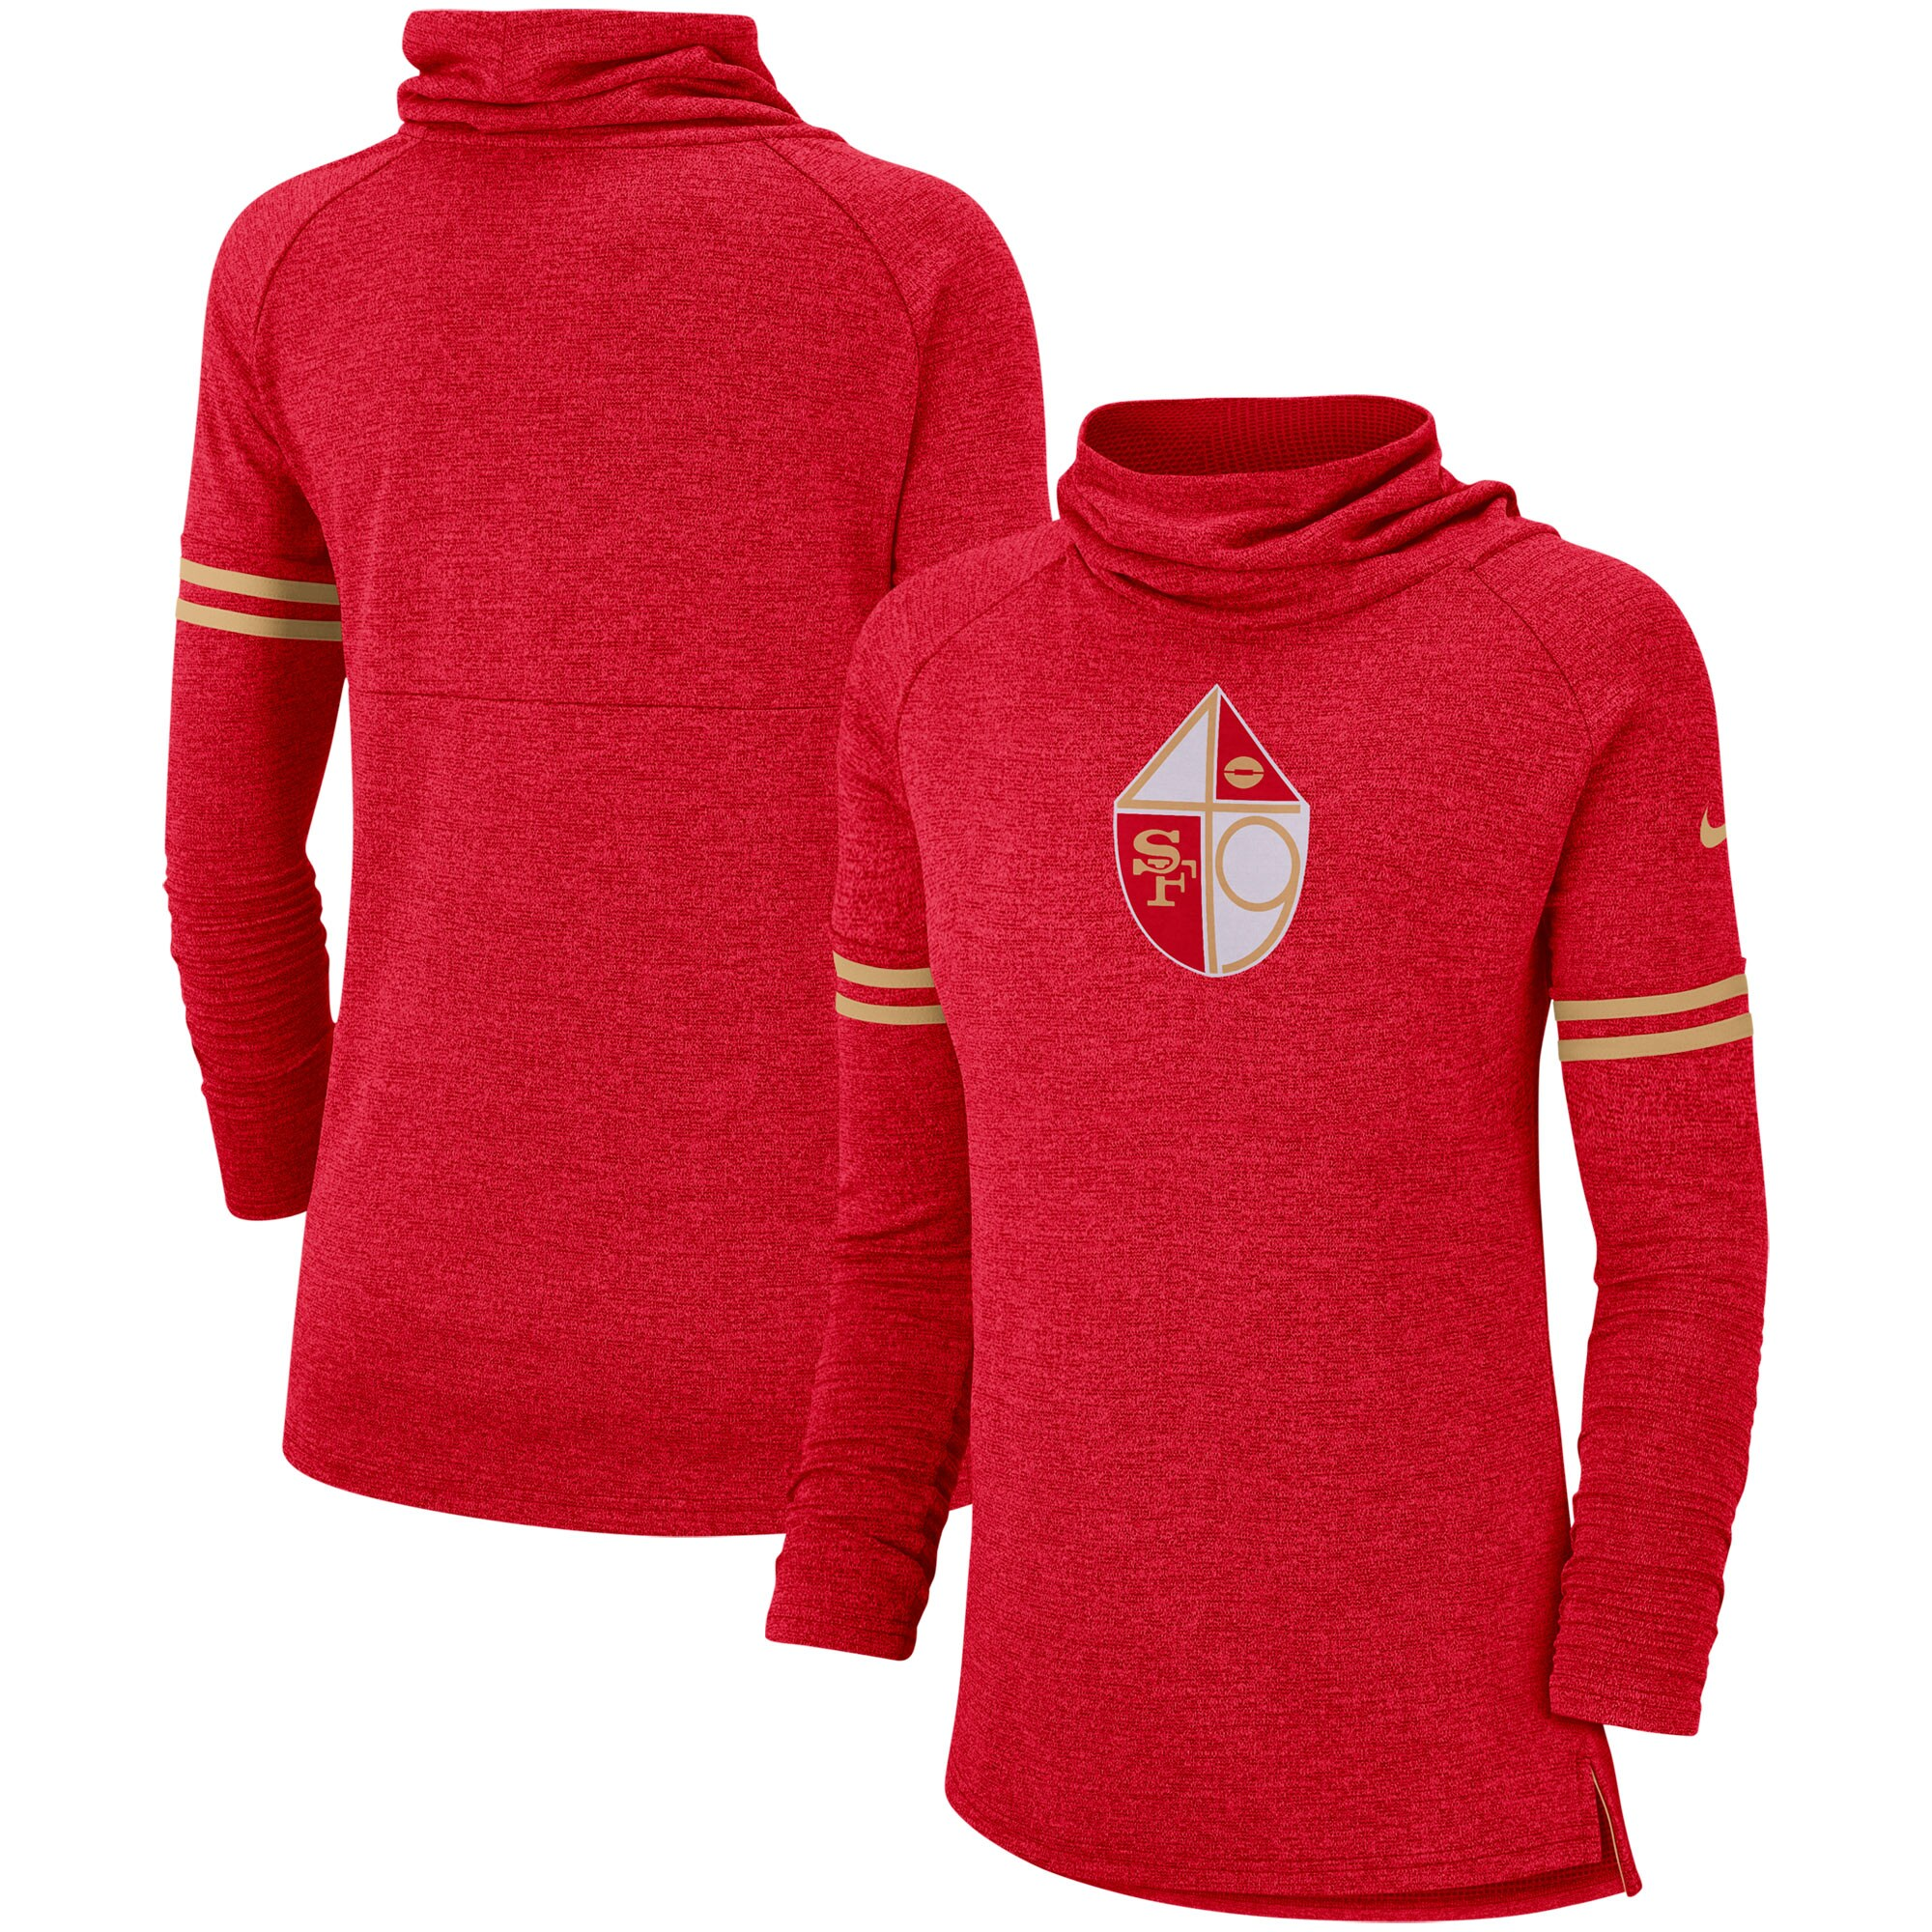 San Francisco 49ers Nike Women's Historic Marks Long Sleeve Tri-Blend Funnel Sweatshirt - Scarlet